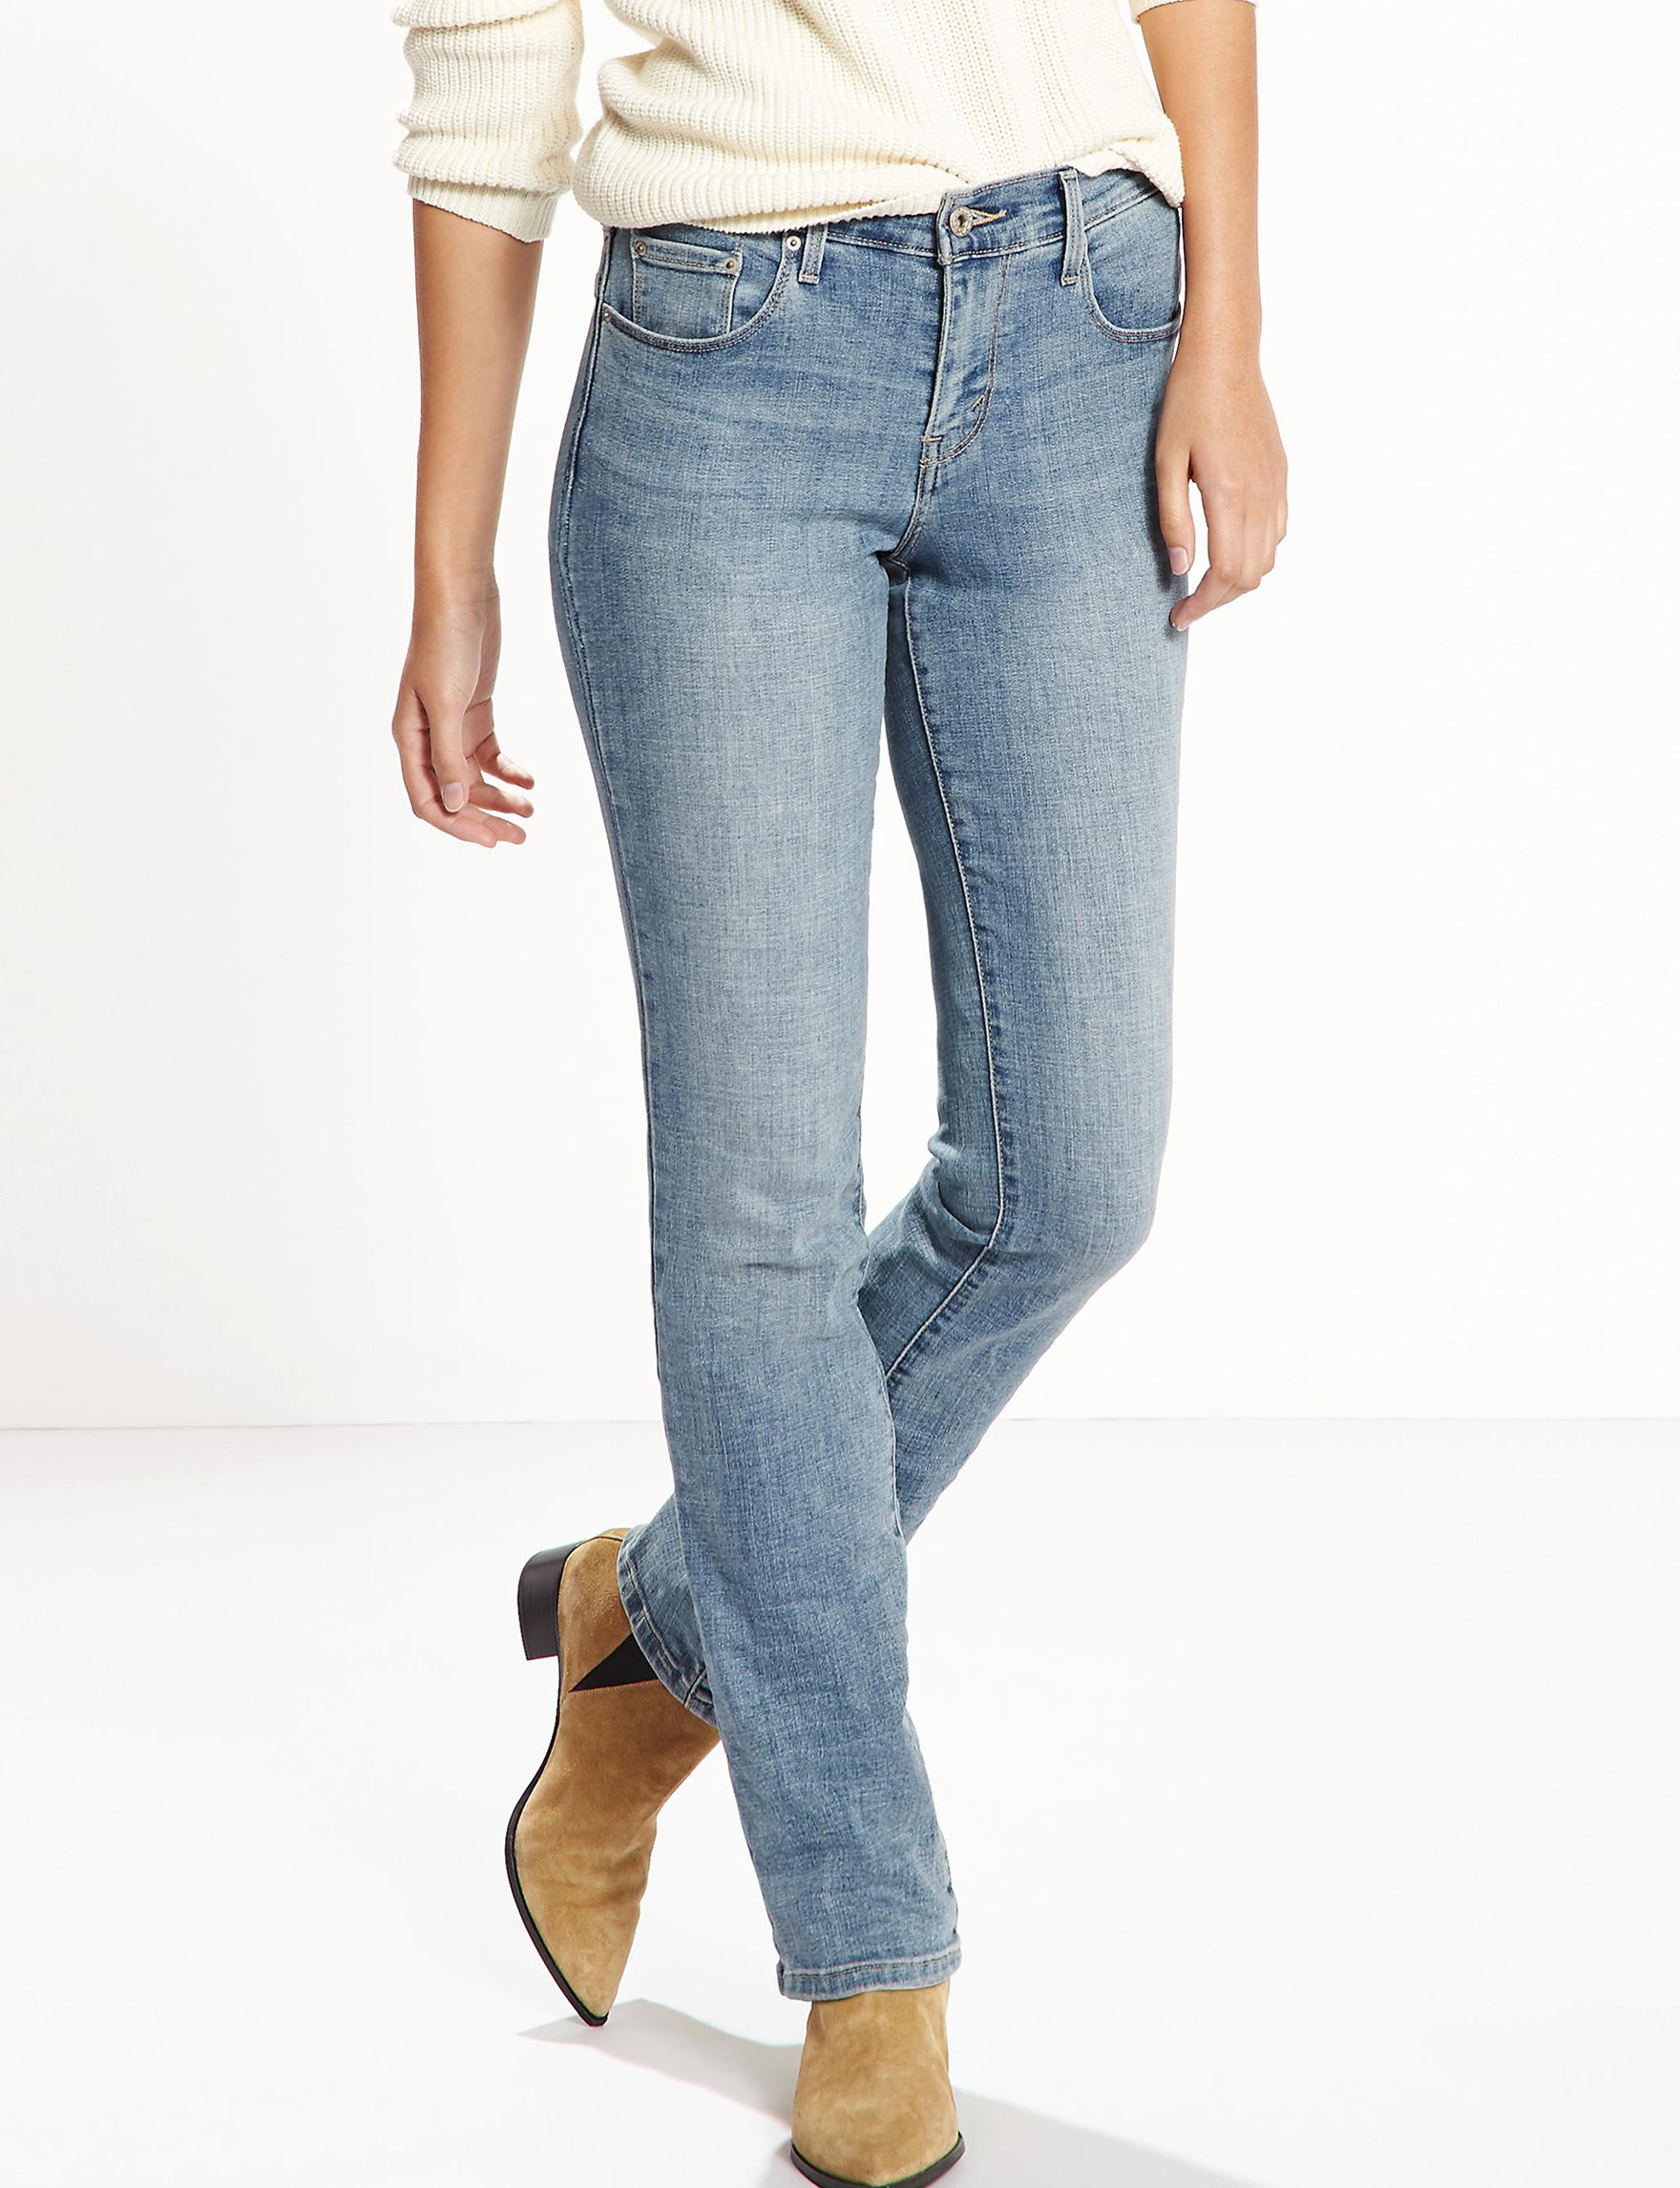 """Nouveau Levis Boot Cut Jeans in size 10 Long. 99% Cotton and 1% Lycra Spandex. One mark on back left waist band but could be covered by a belt. 16"""" across waist flat, 10"""" rise, and 34"""" inseam."""